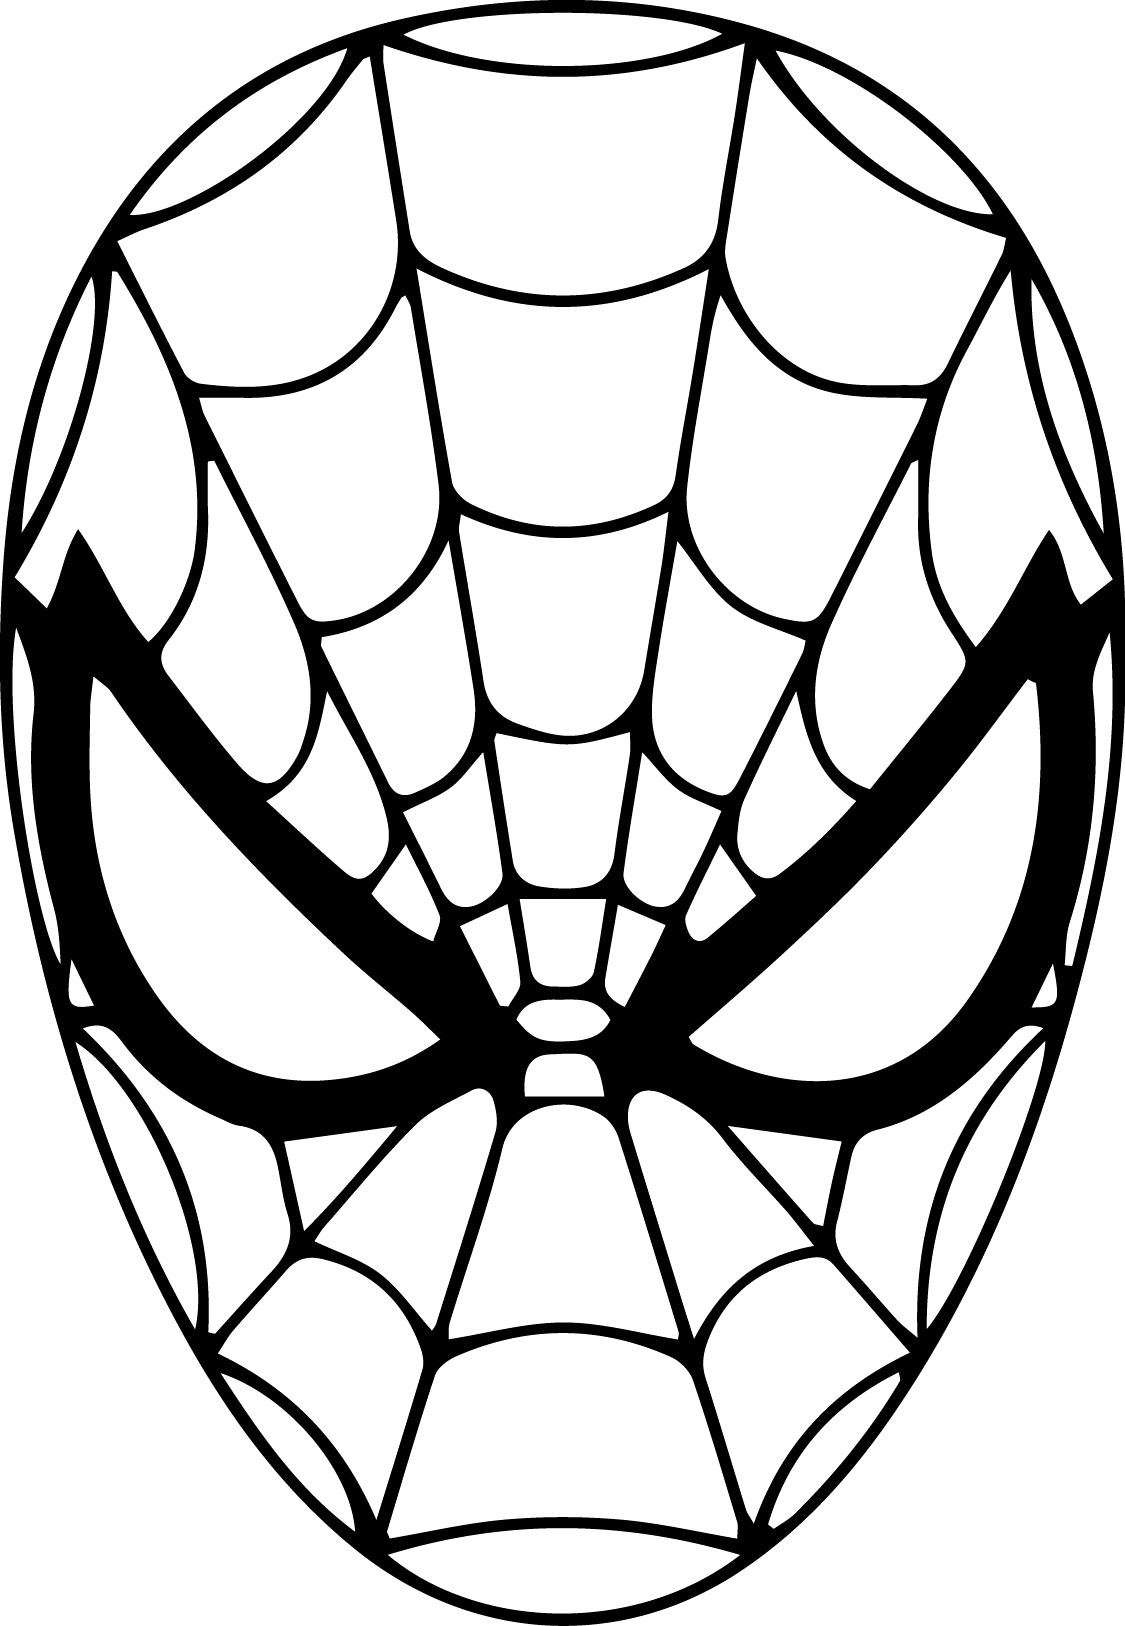 mans face coloring page spider man head drawing sketch coloring page face mans page coloring